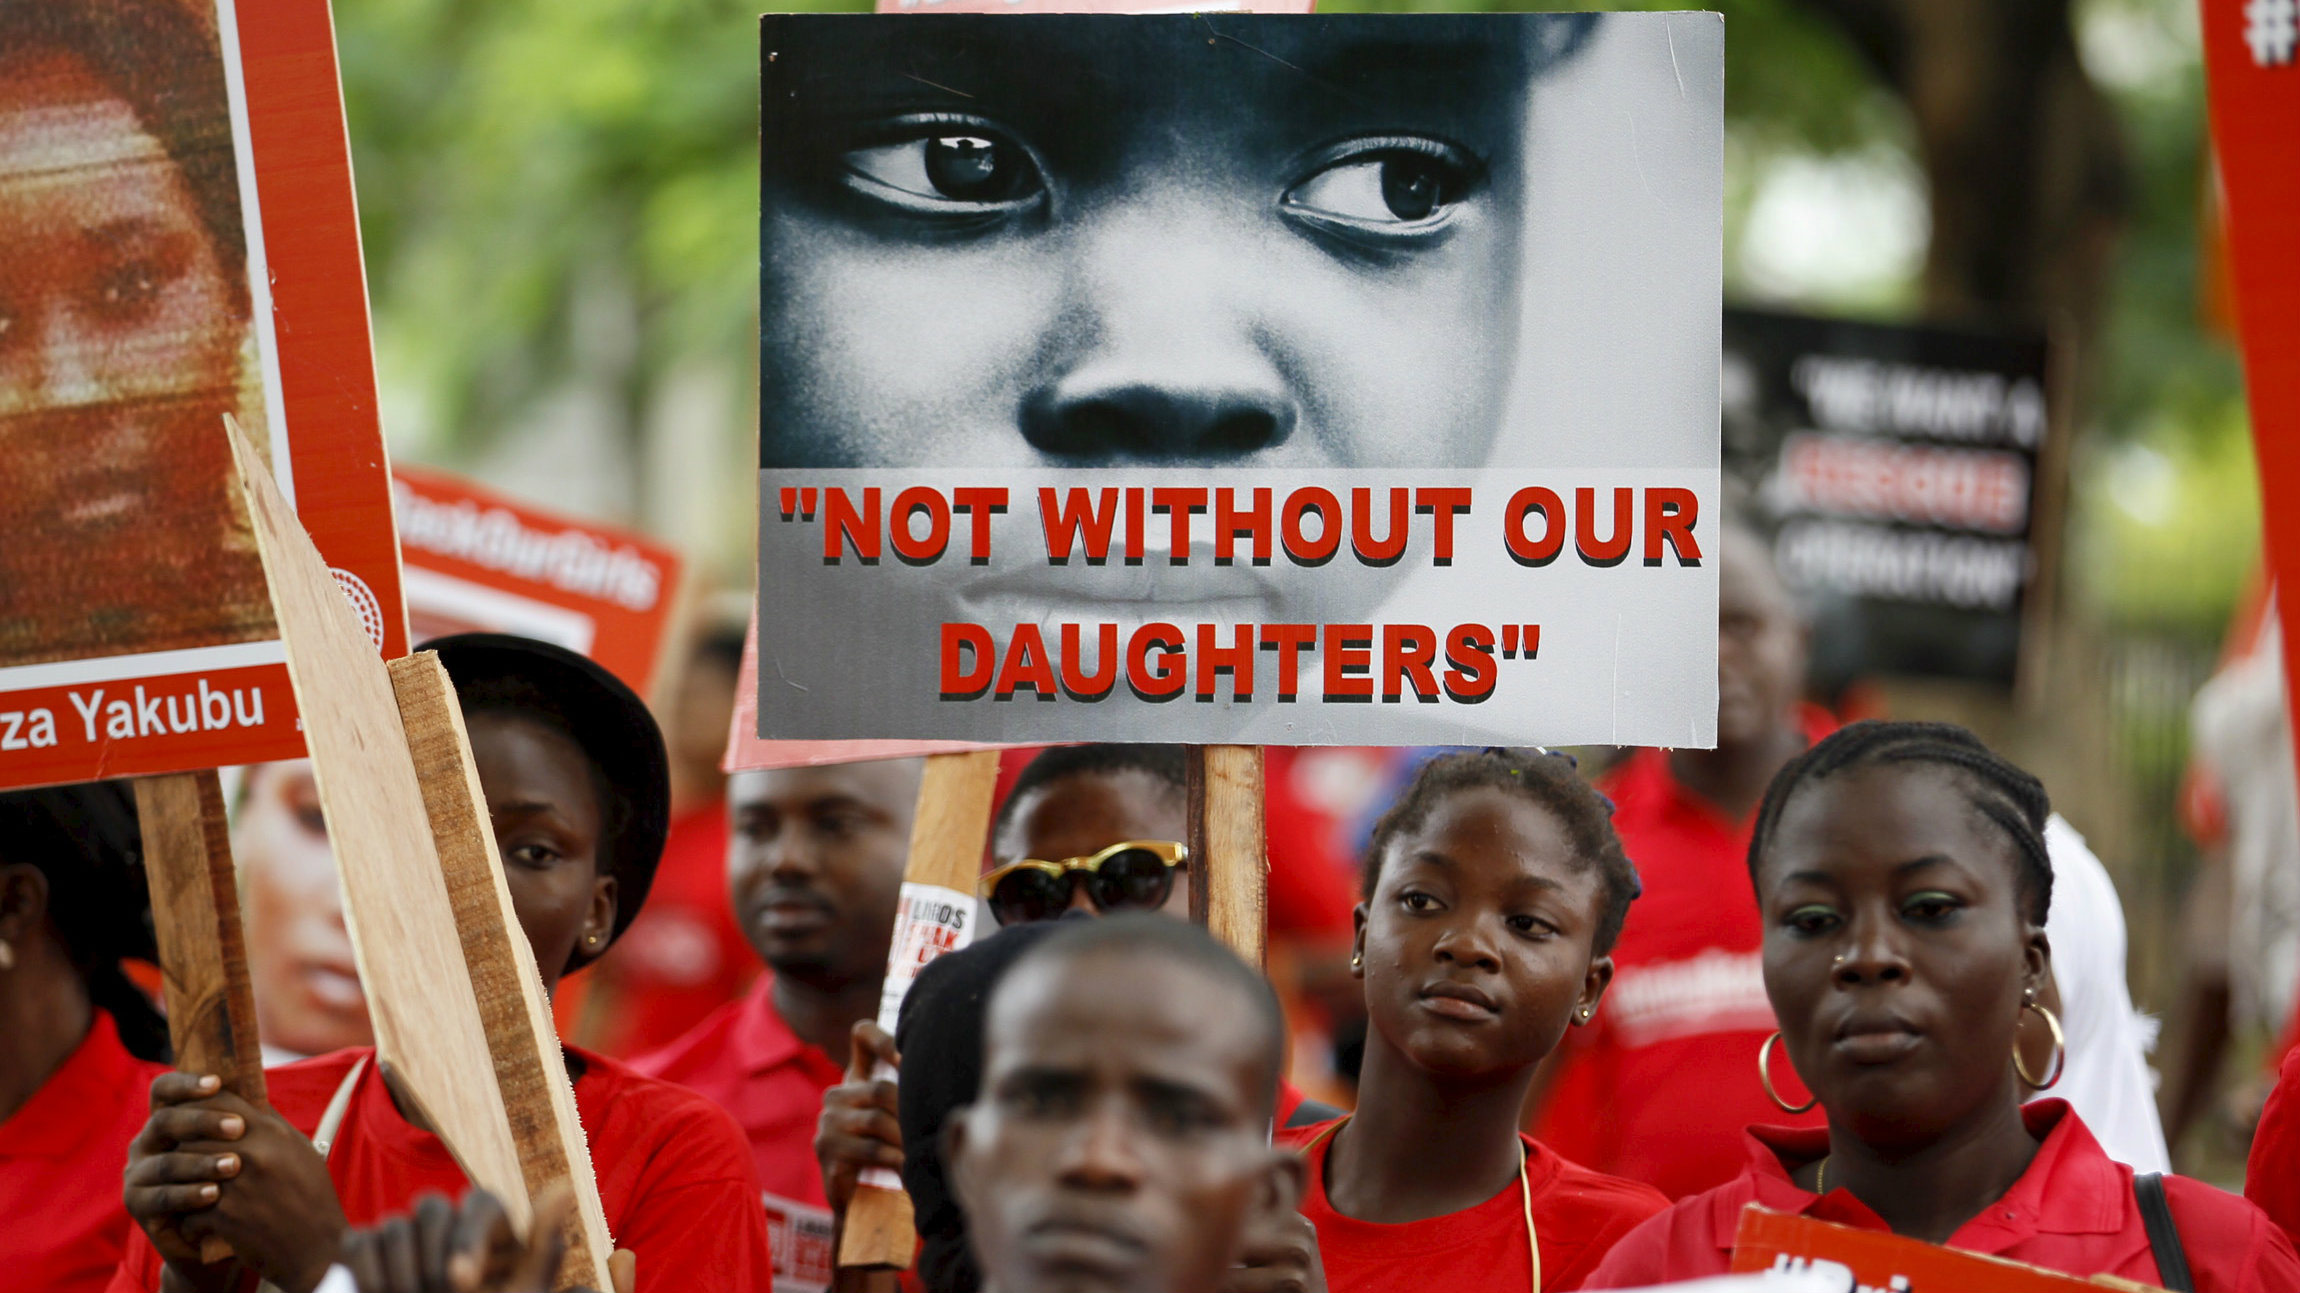 Bring Back Our Girls (BBOG) campaigners hold banners as they walk during a protest procession marking the 500th day since the abduction of girls in Chibok, along a road in Lagos August 27, 2015.